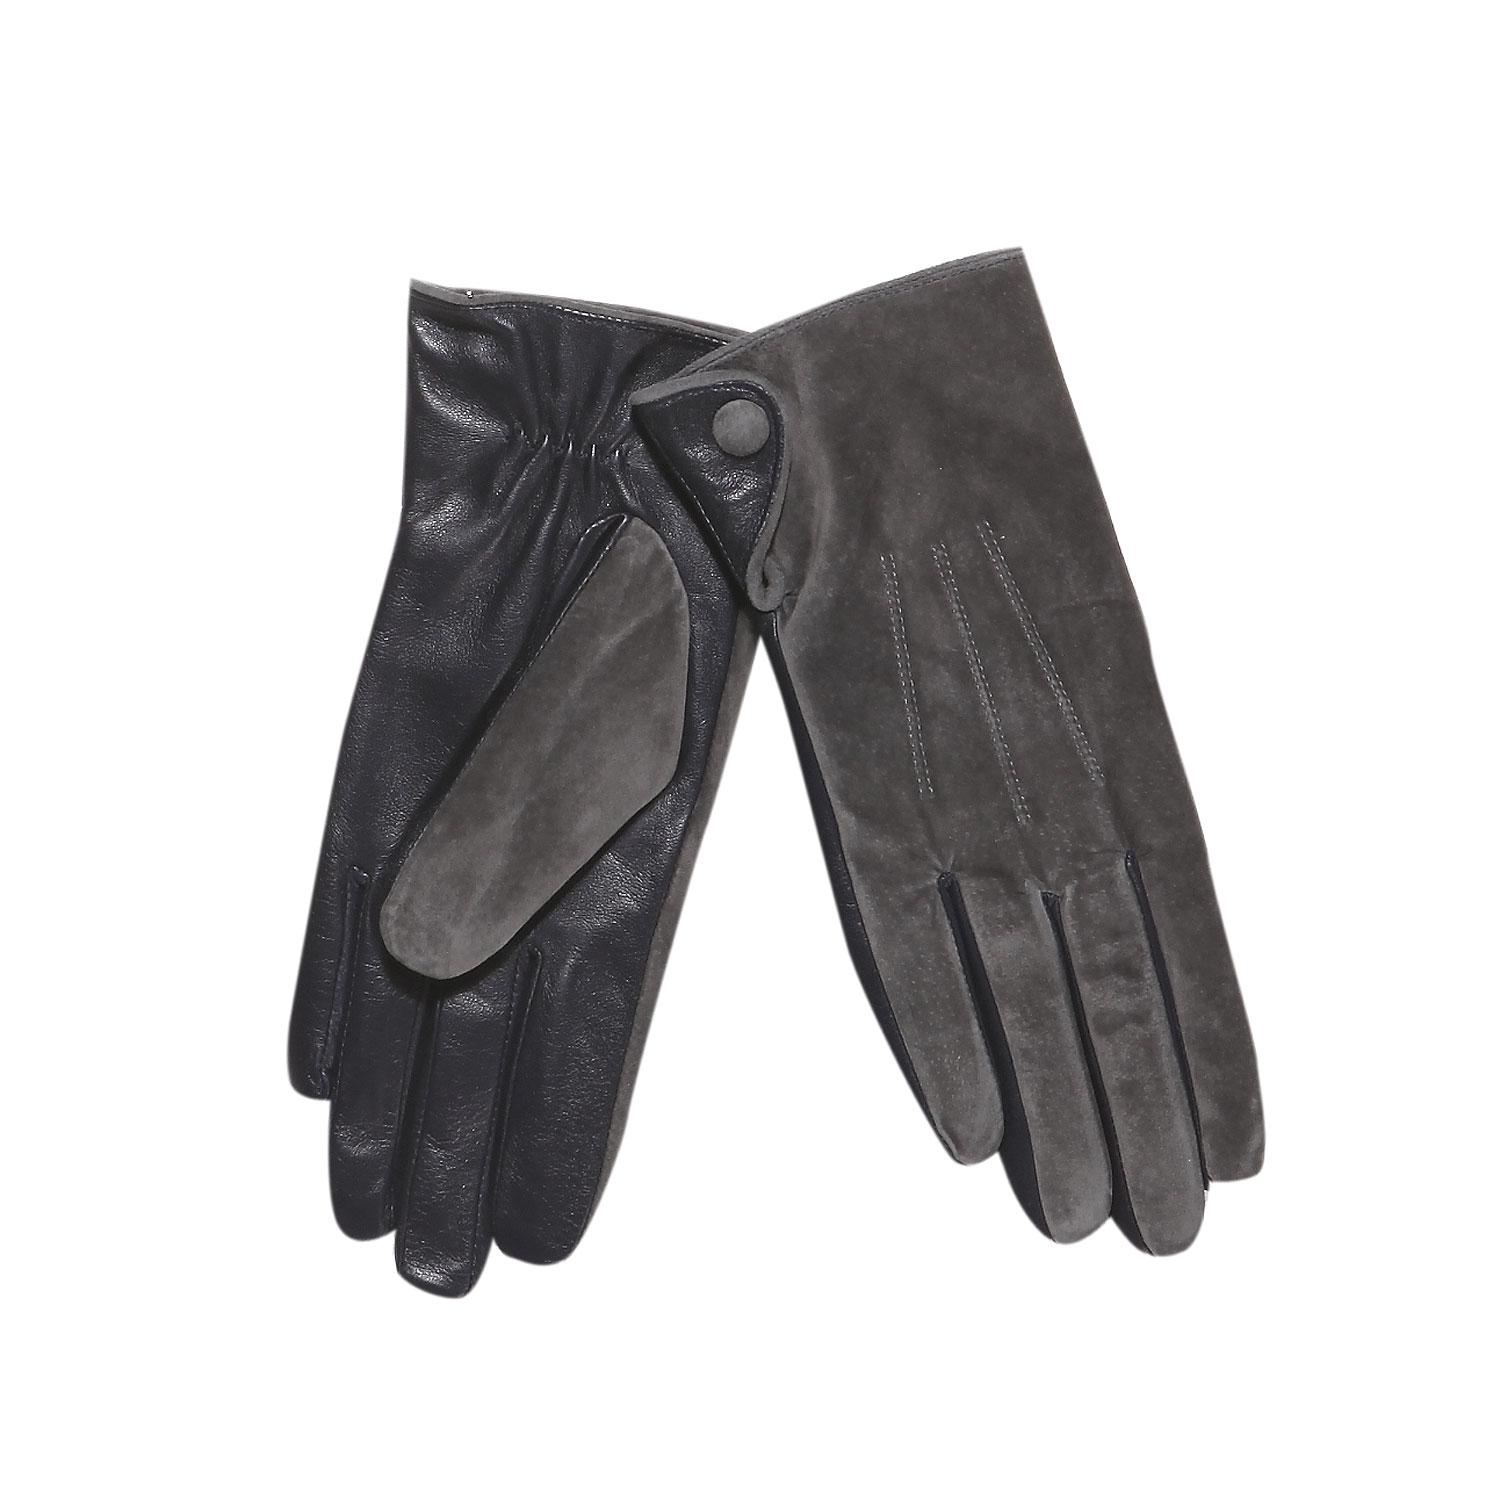 Bata Ladies\' leather gloves.